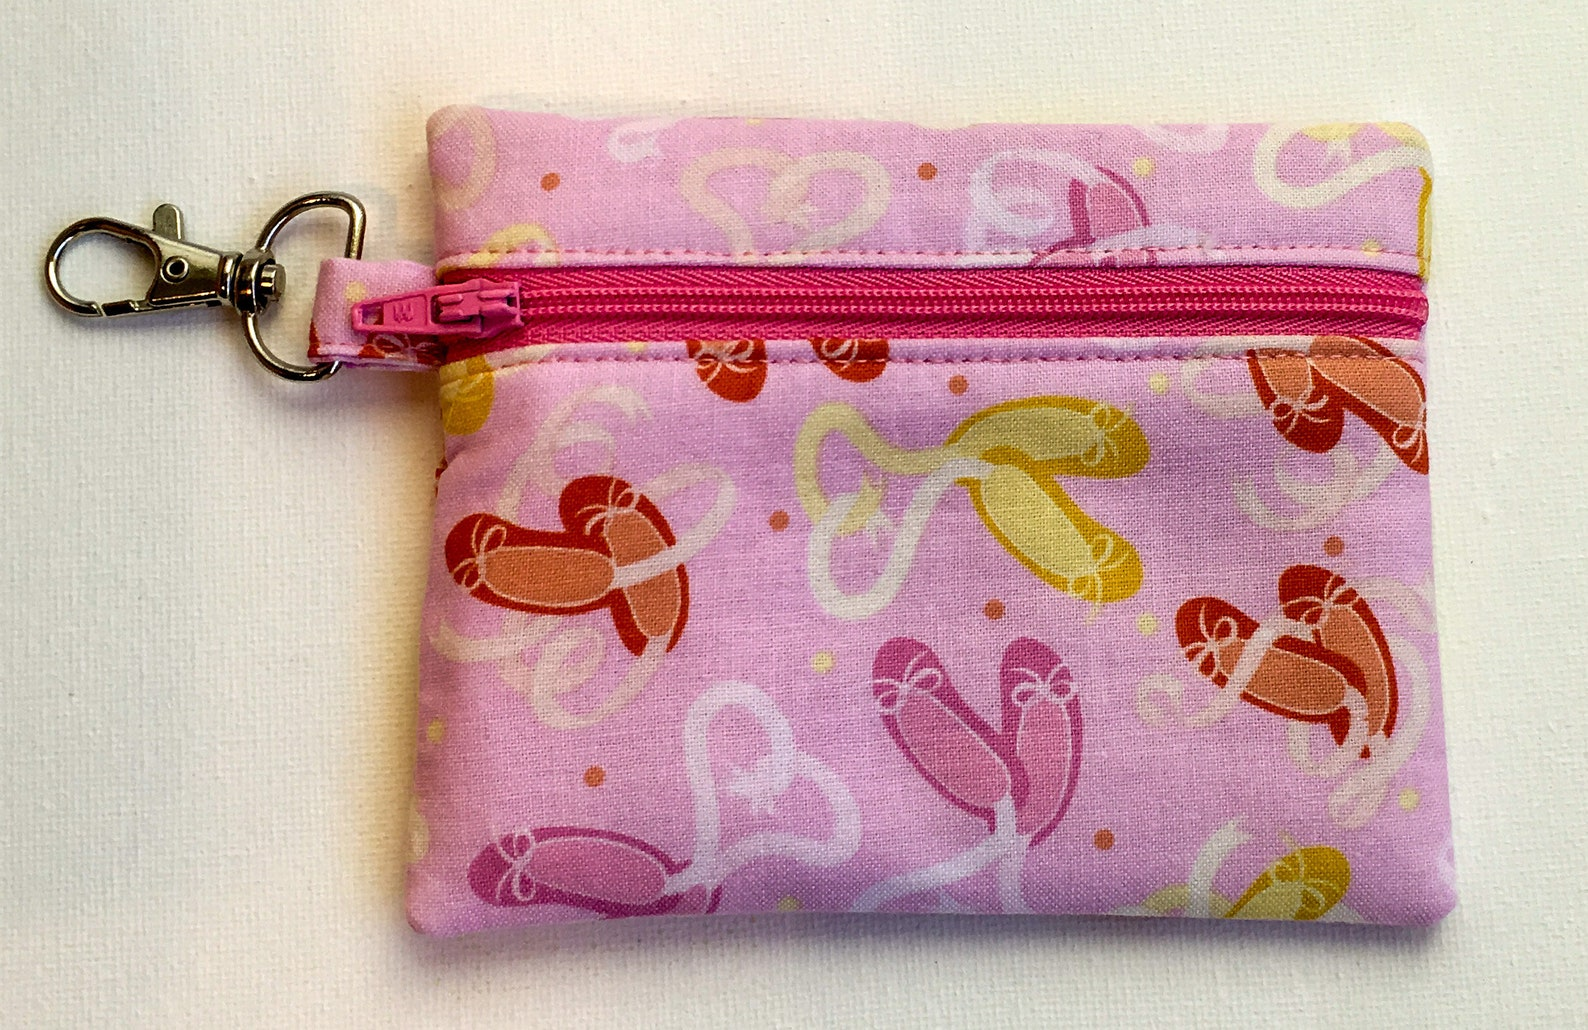 ballet shoes coin purse, card holder, earbud storage, small change purse, lunch money purse, zippered coin purse,